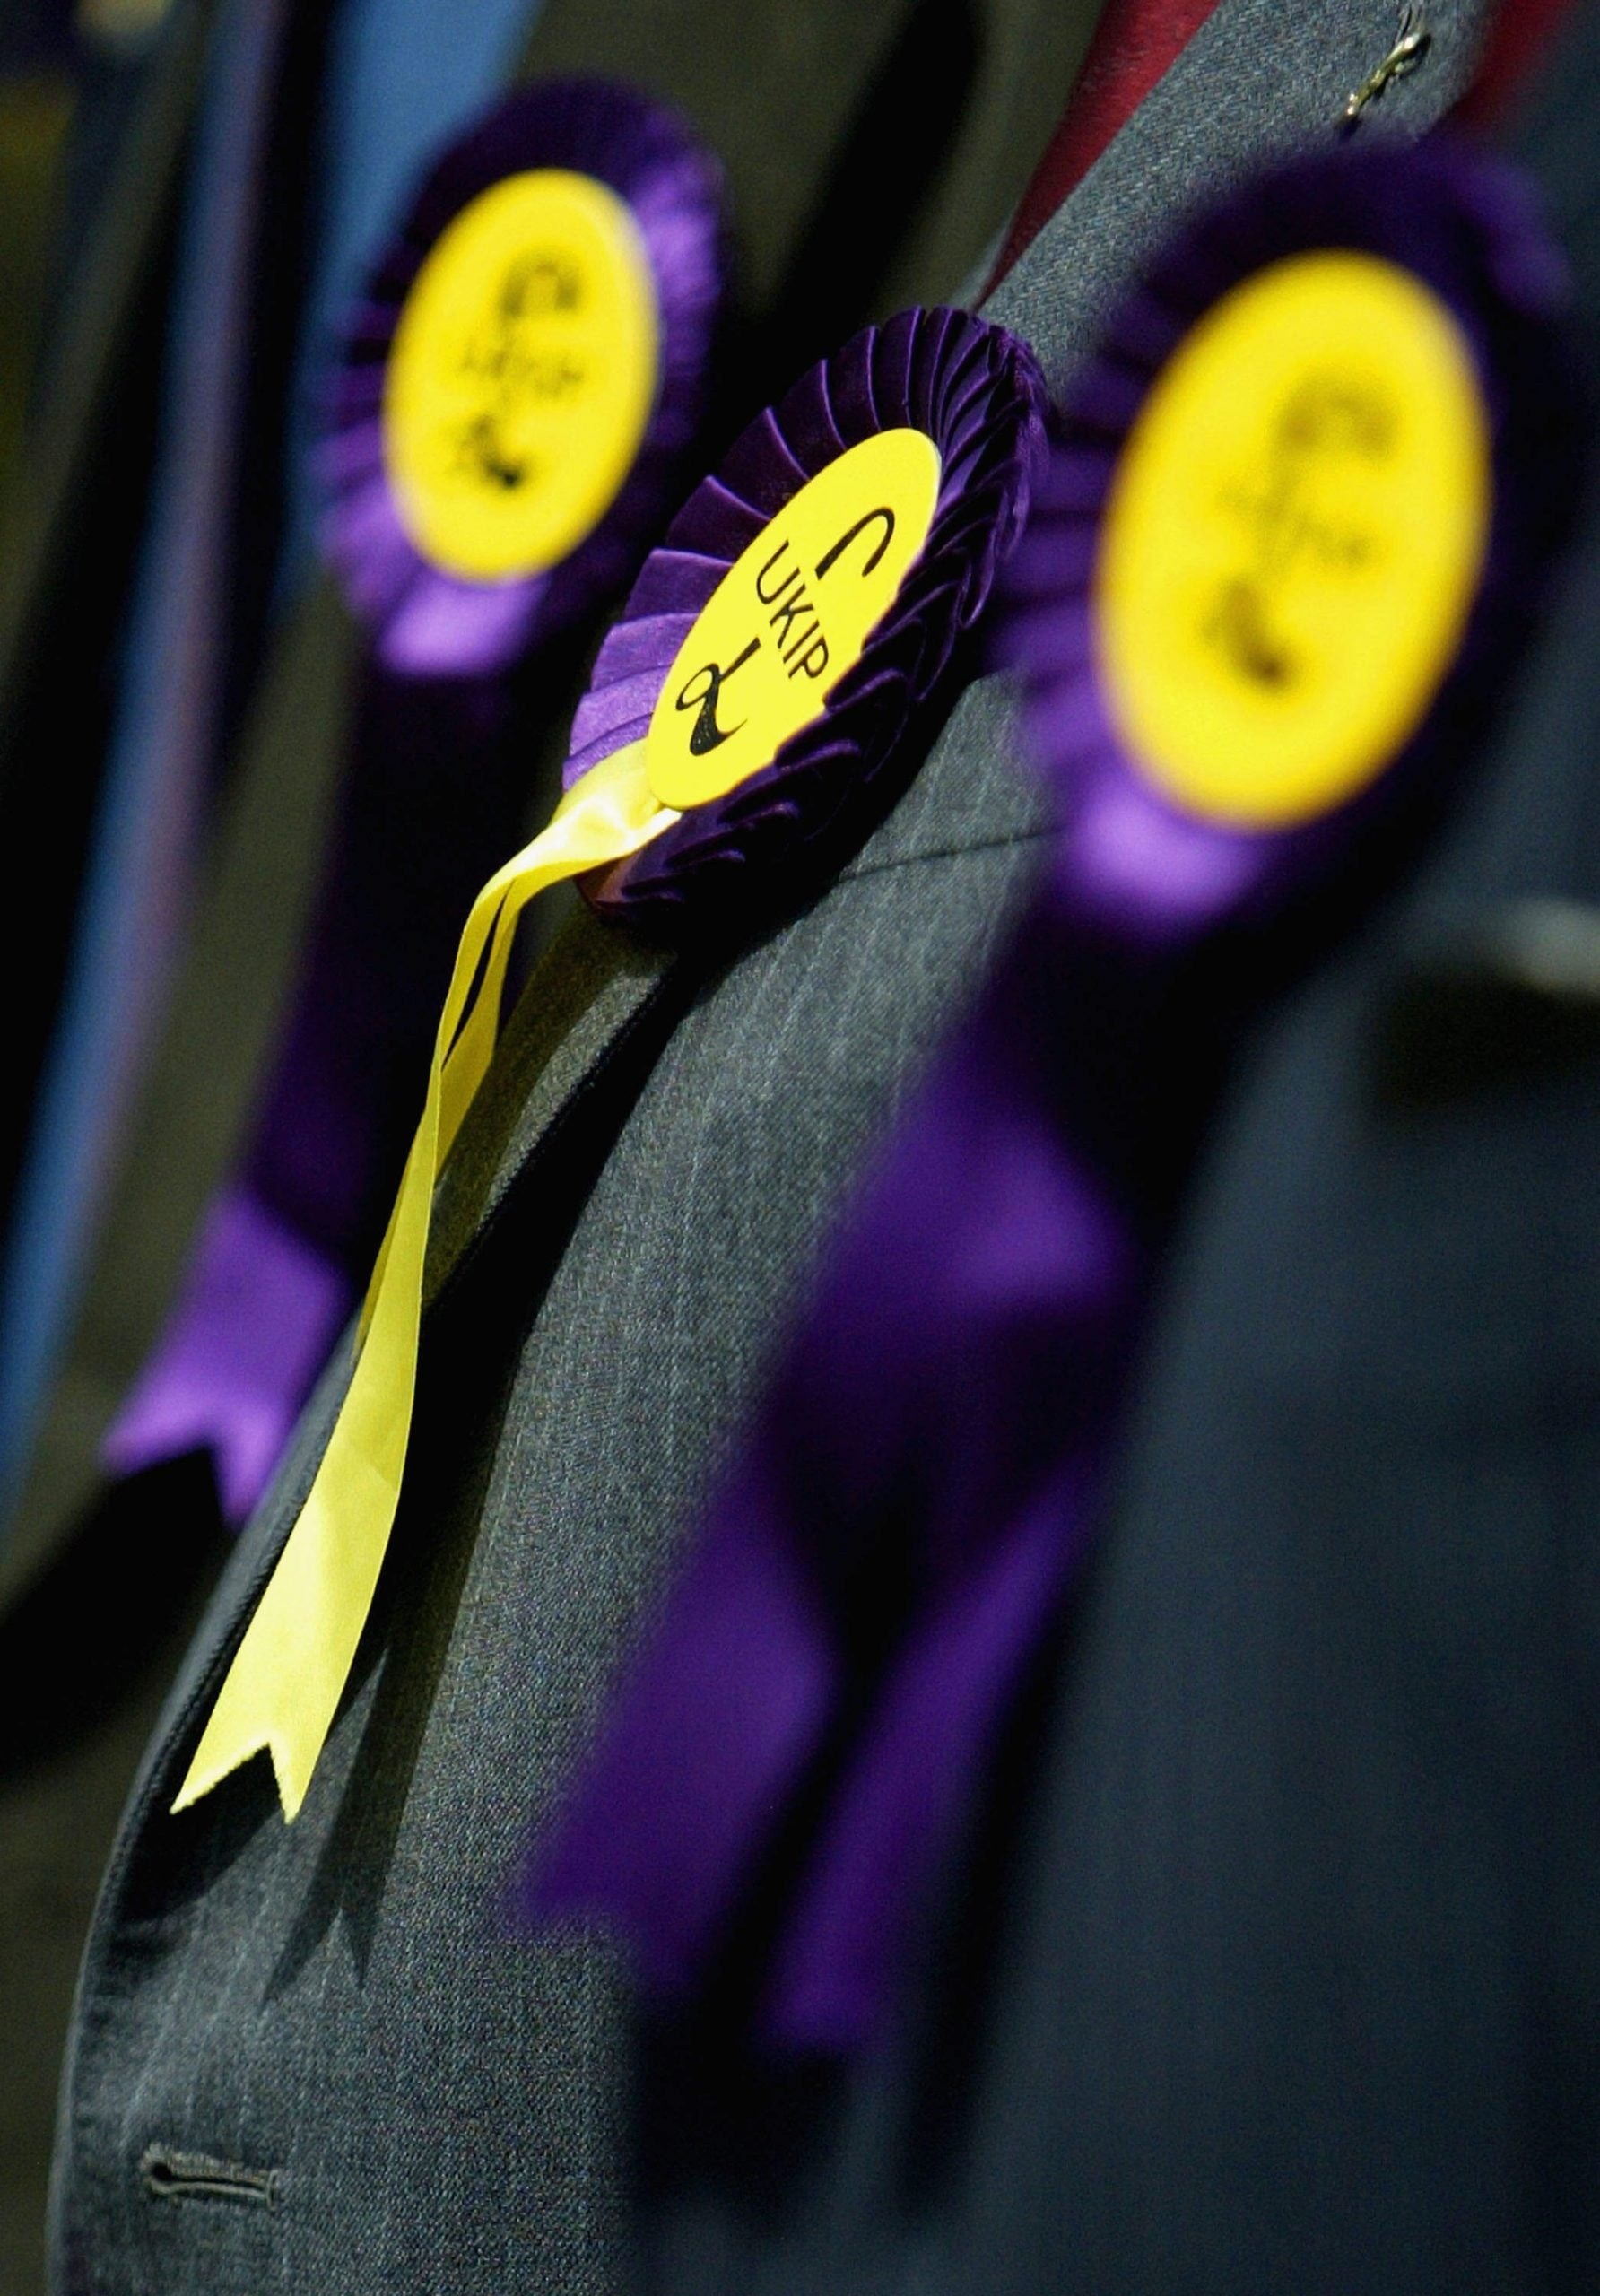 For the Ukip press officer I slept with, the European Union was Daddy